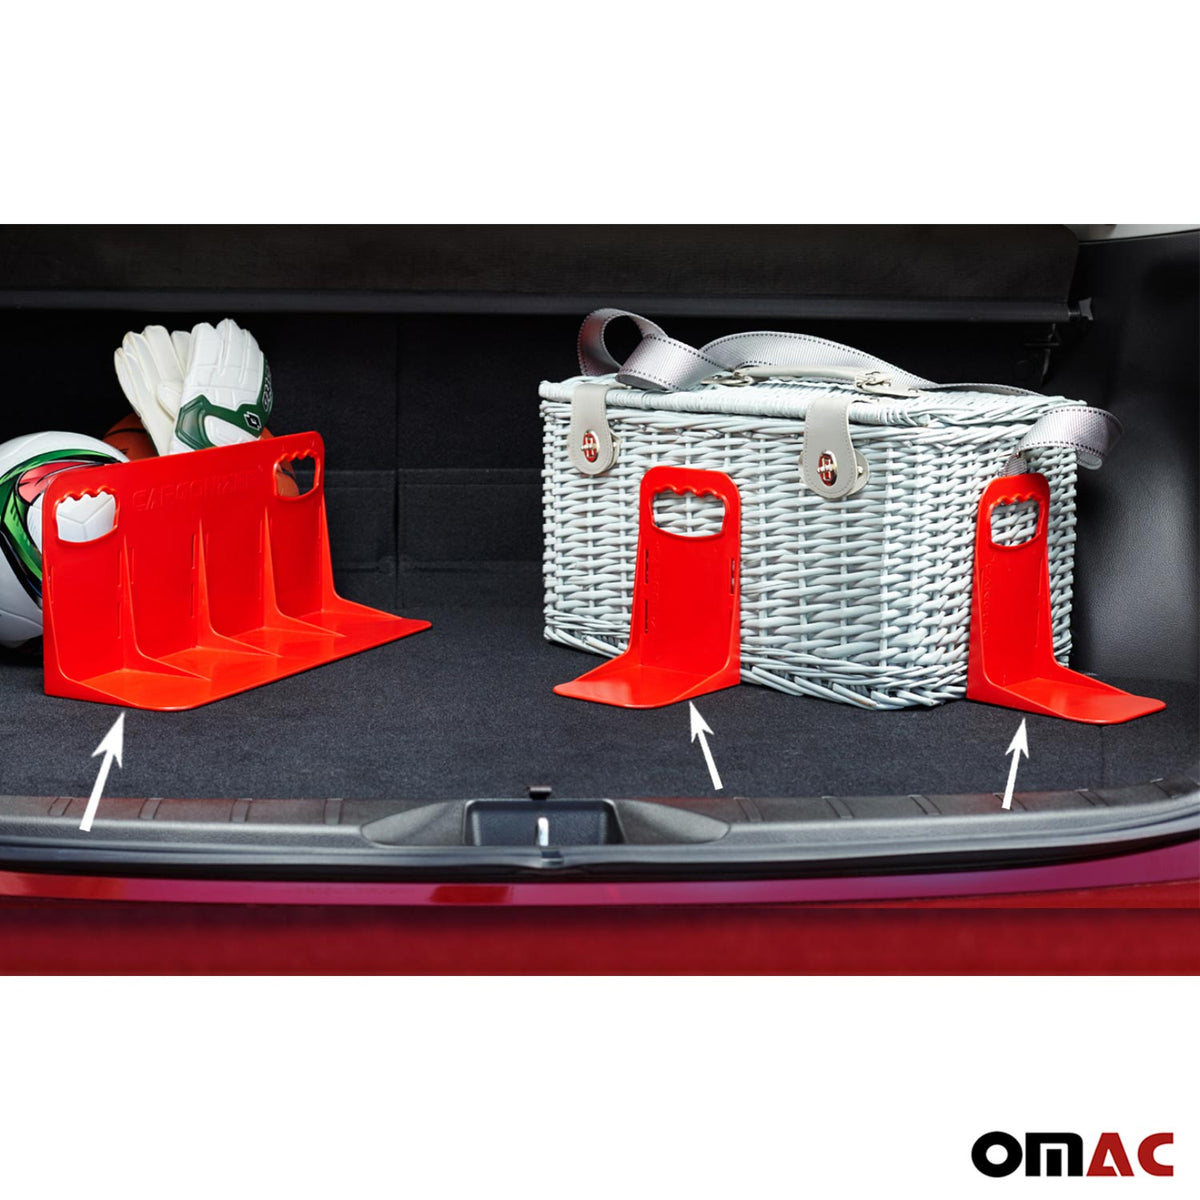 Red Trunk Organizer Velcro Stopper Stand 3 Pcs. For Seat